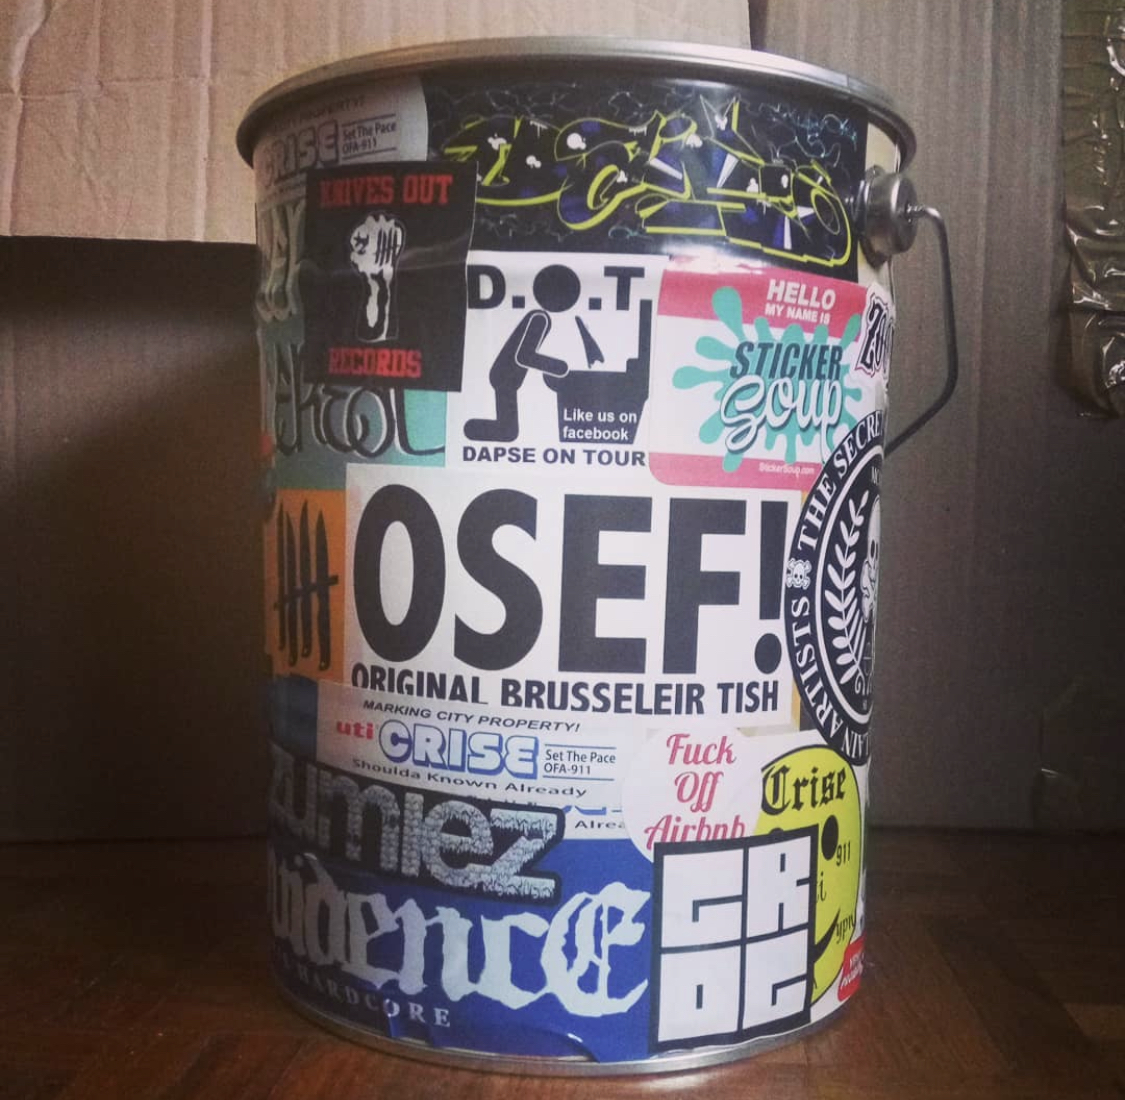 StickerSoup Trash can from France